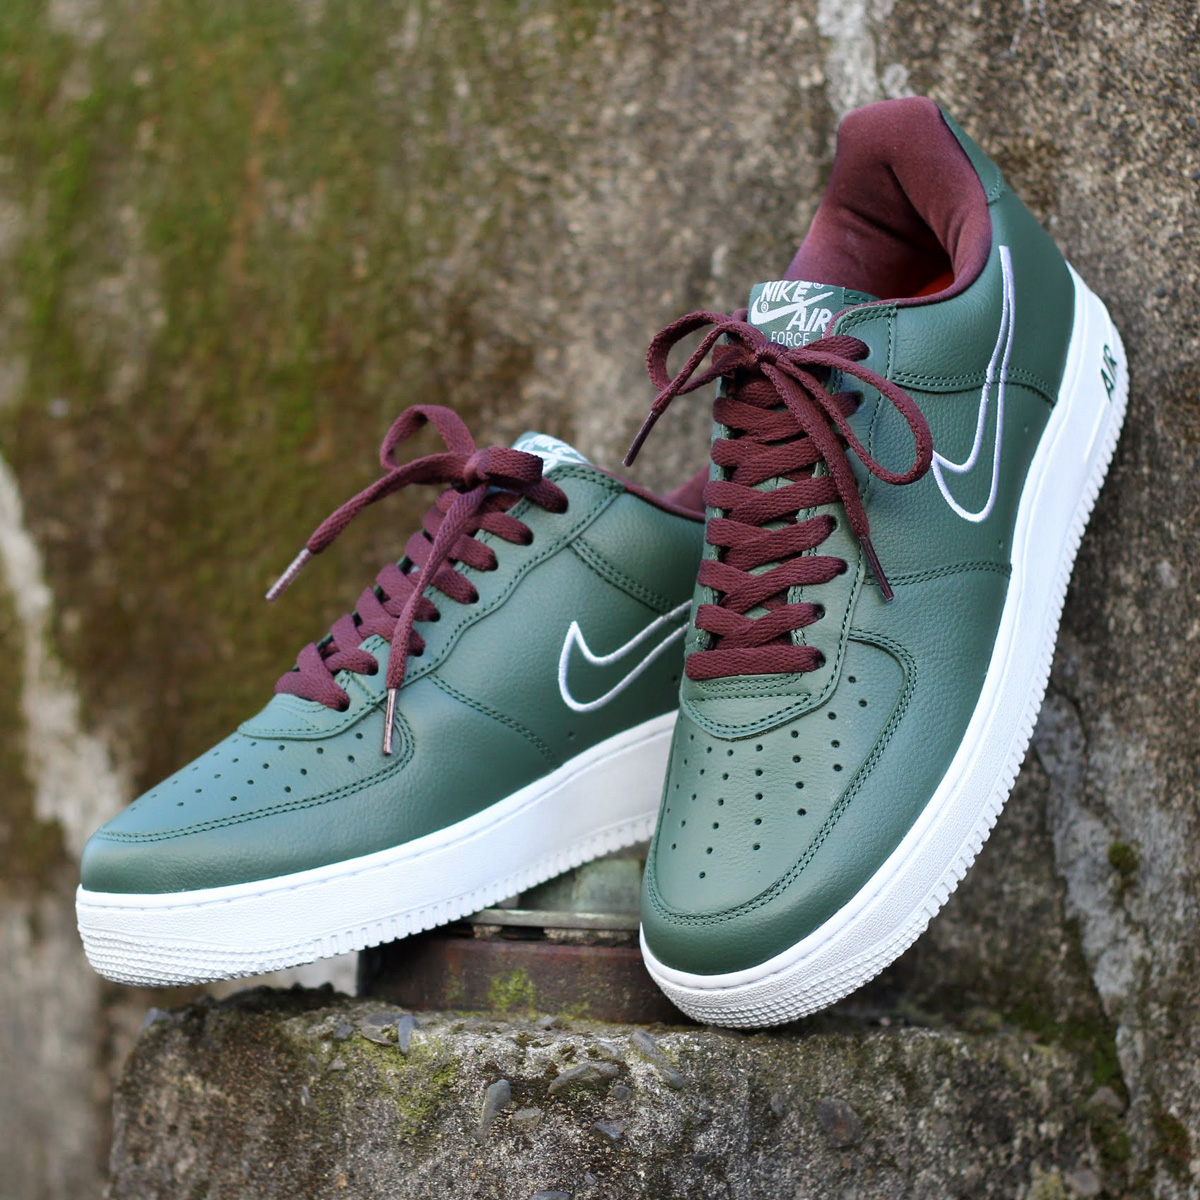 NIKE AIR FORCE 1 LOW RETRO(ナイキ エア フォース 1 ロー レトロ)(DEEP FOREST/WHITE-EL DORADO)18SP-S